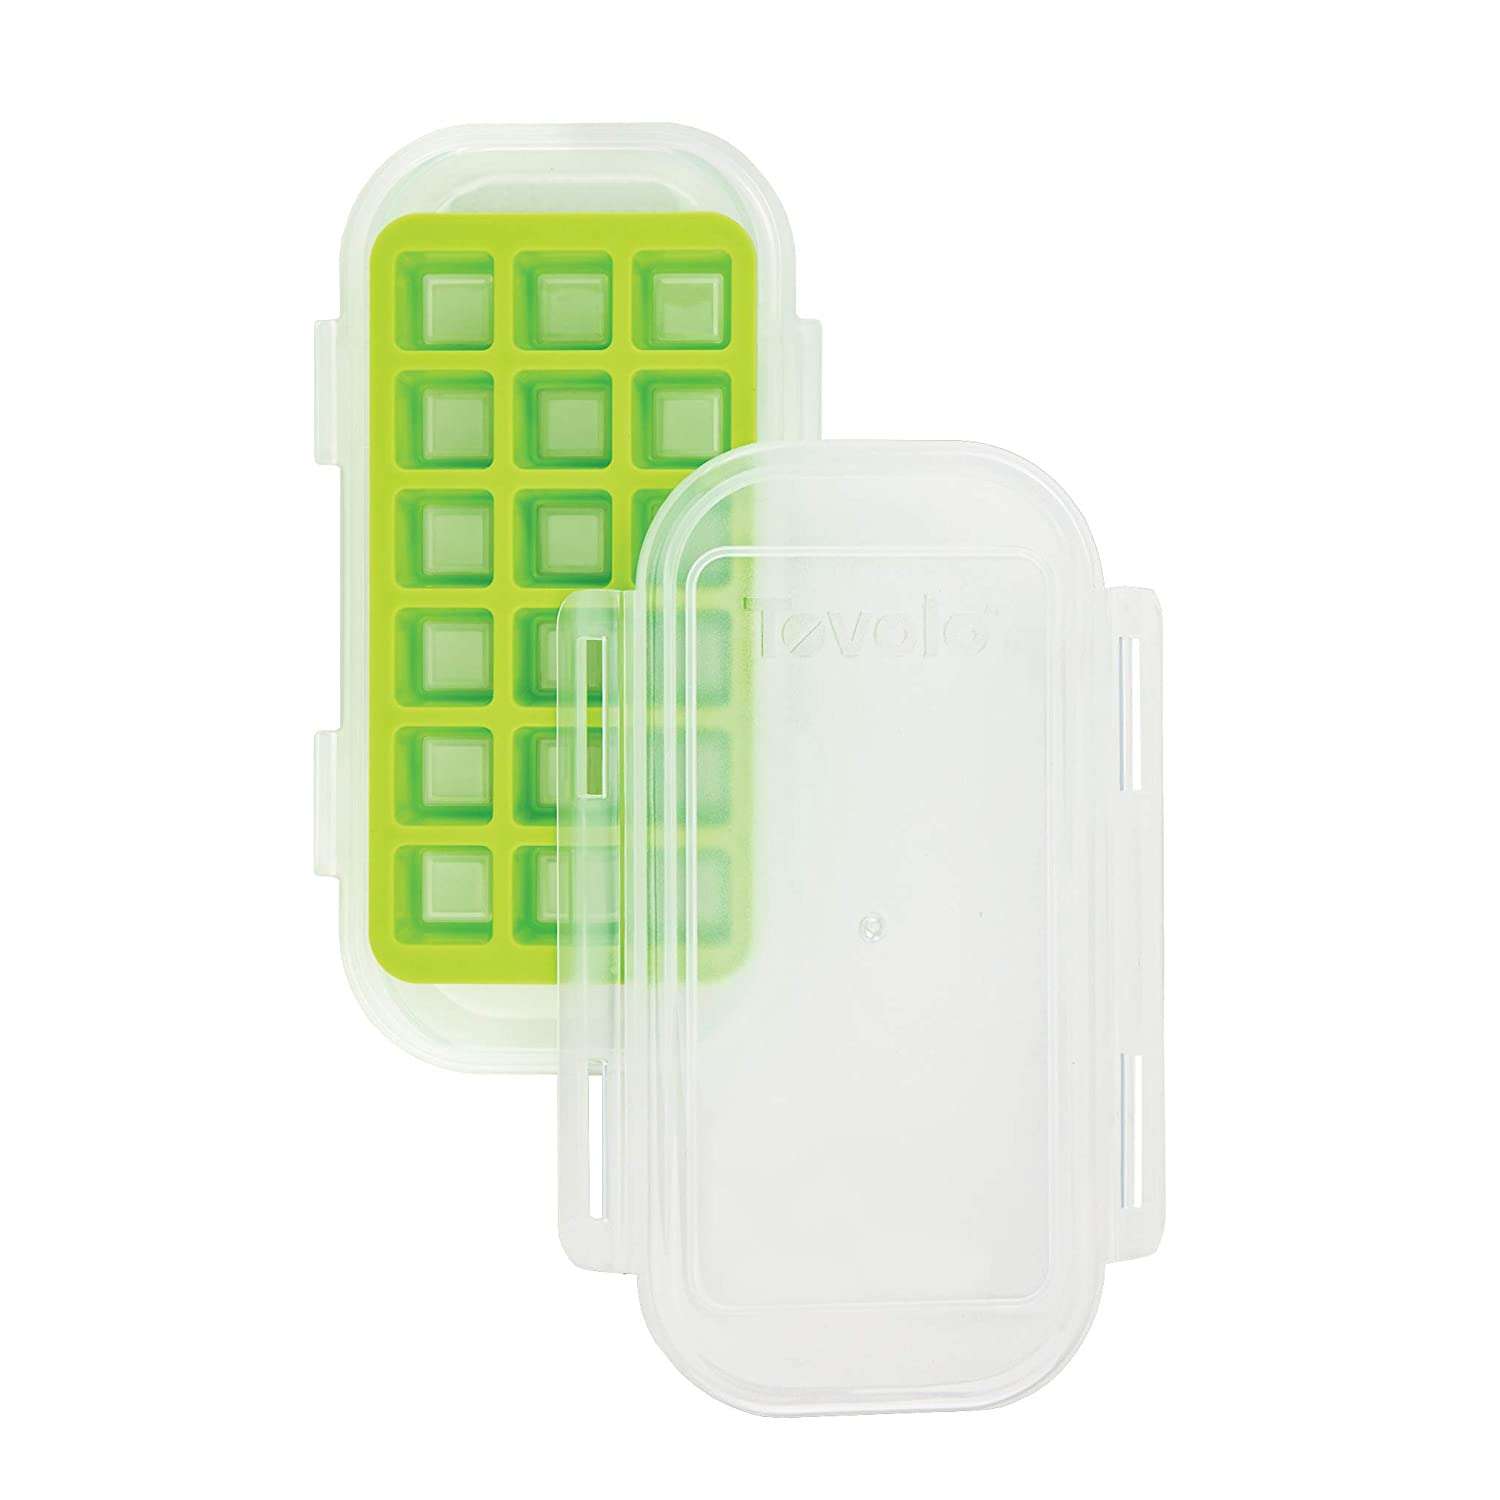 Tovolo 81-32705 Clove Storing Chopped, Minced and Crushed Garlic Freezer Tray, One, Spring Green